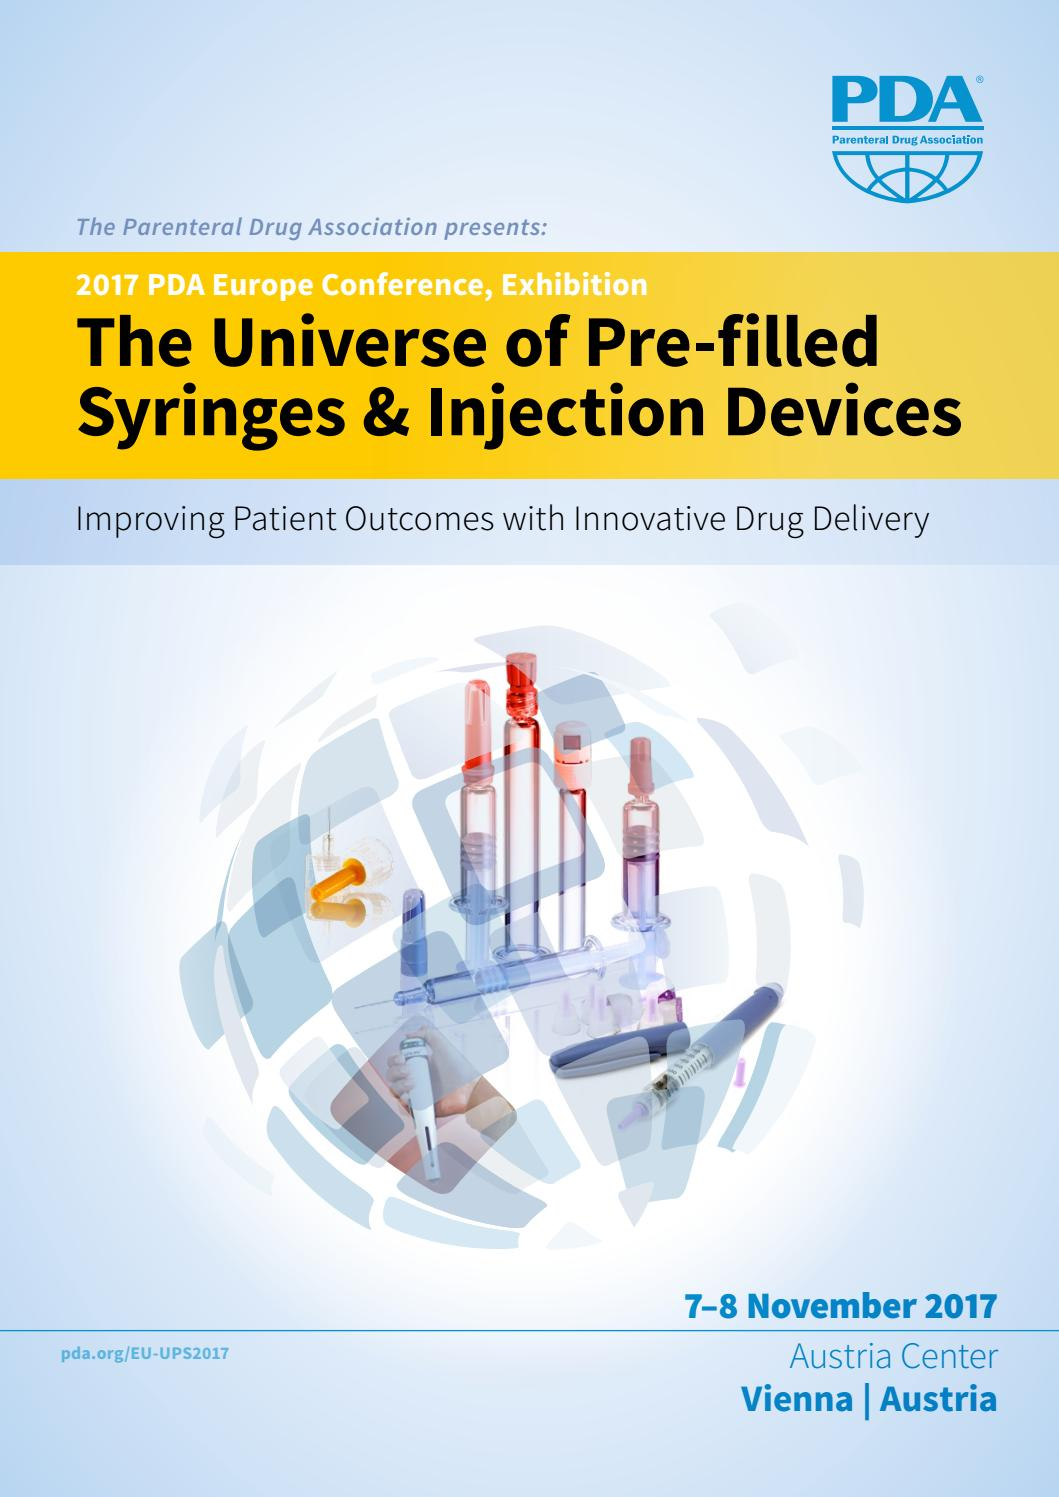 2017 PDA Europe The Universe of Pre-filled Syringes and Injection